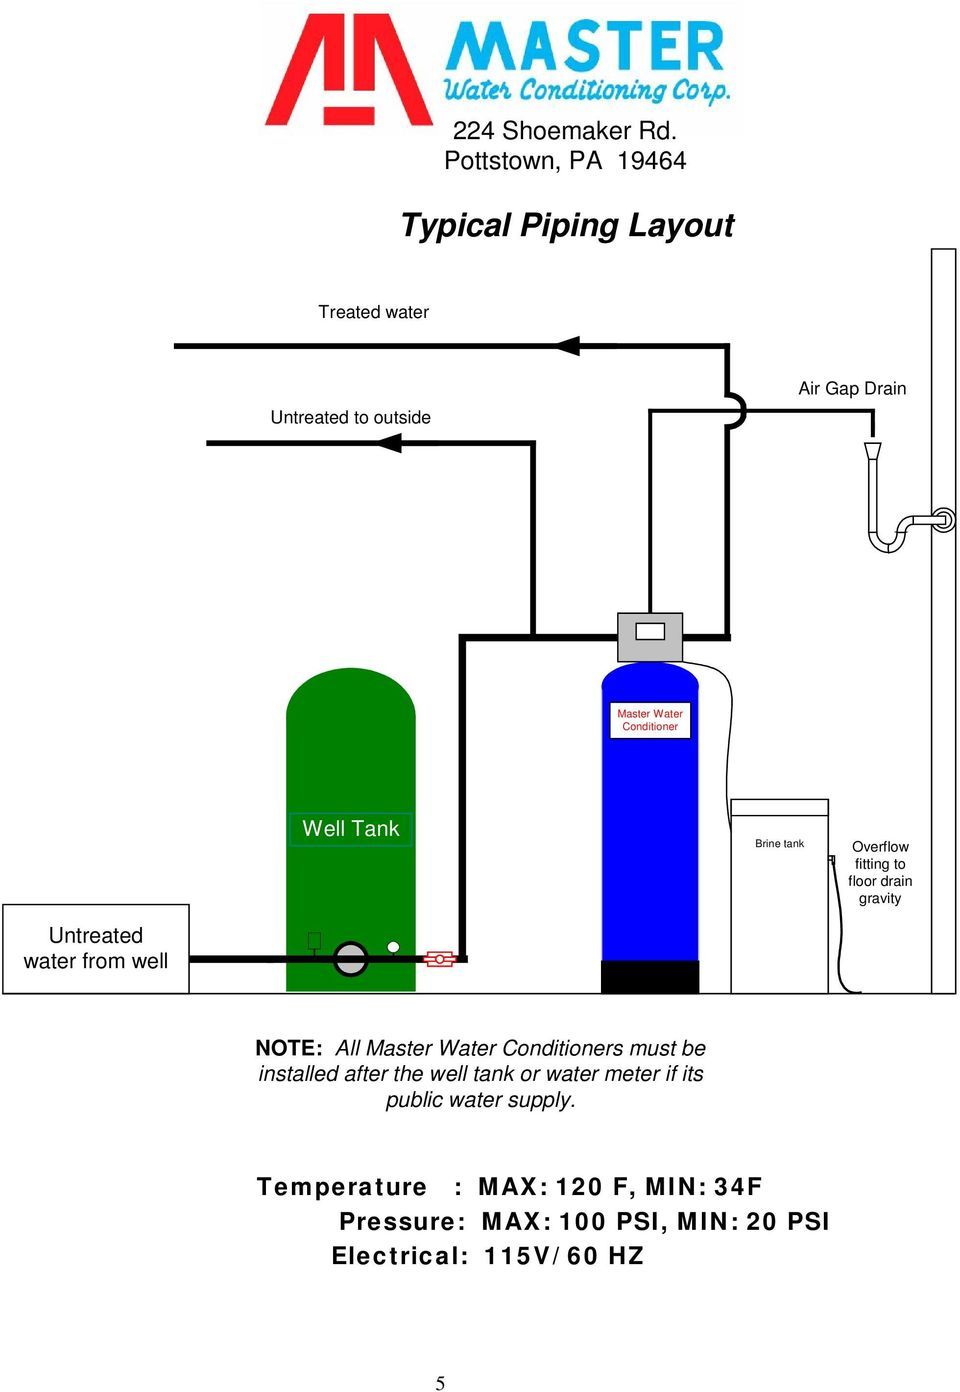 Master Water Conditioning Corp Mp Mba 15t 30t Using The 255 762 Meter Diagram Conditioner Well Tank Brine Overflow Fitting To Floor Drain Gravity Untreated From Note